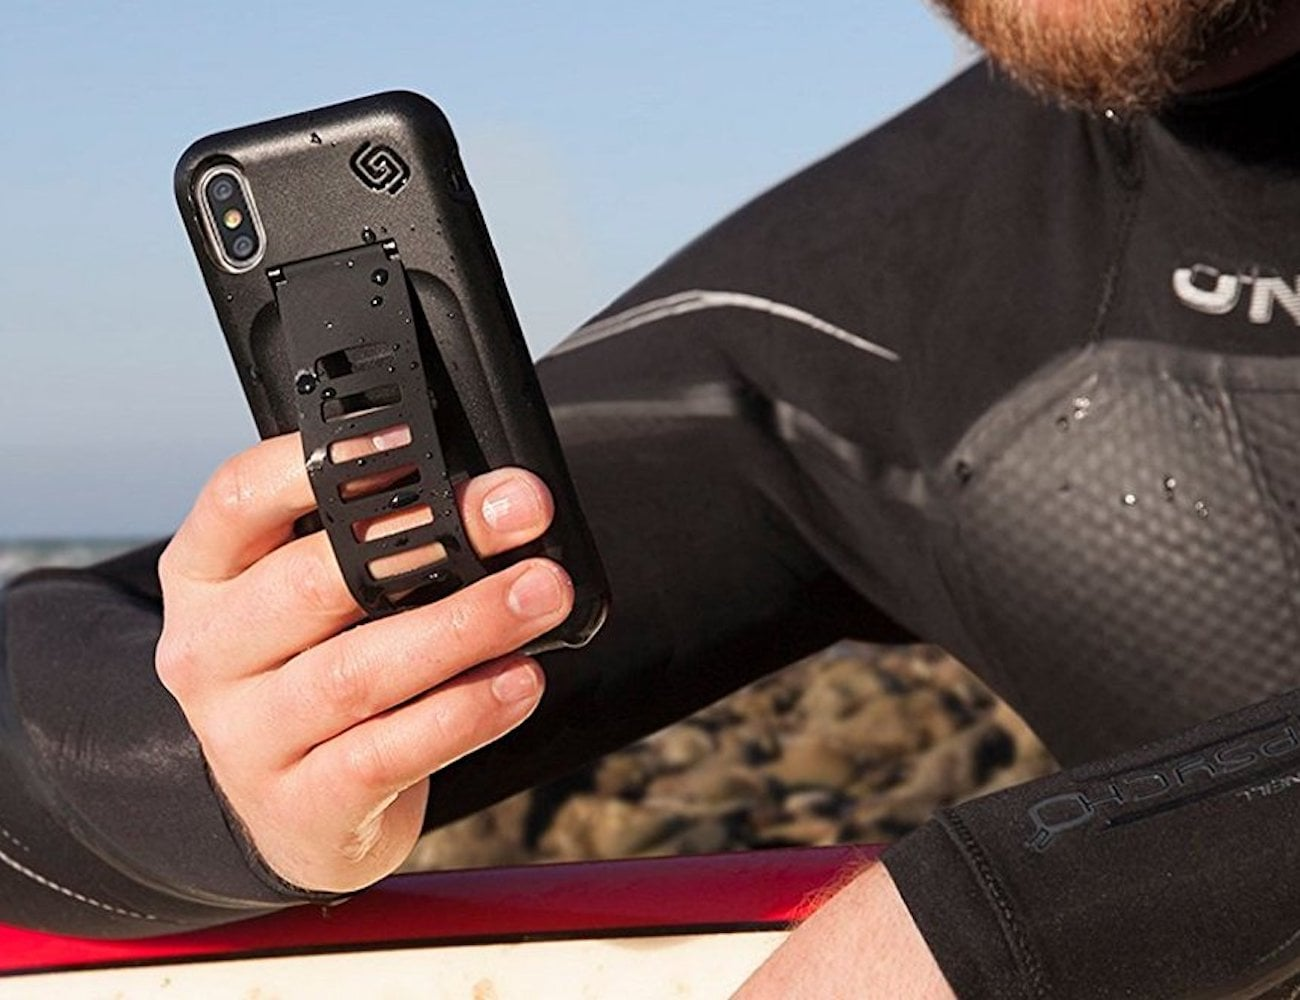 Grip2ü GettaGrip BOOST iPhone X Grip Case